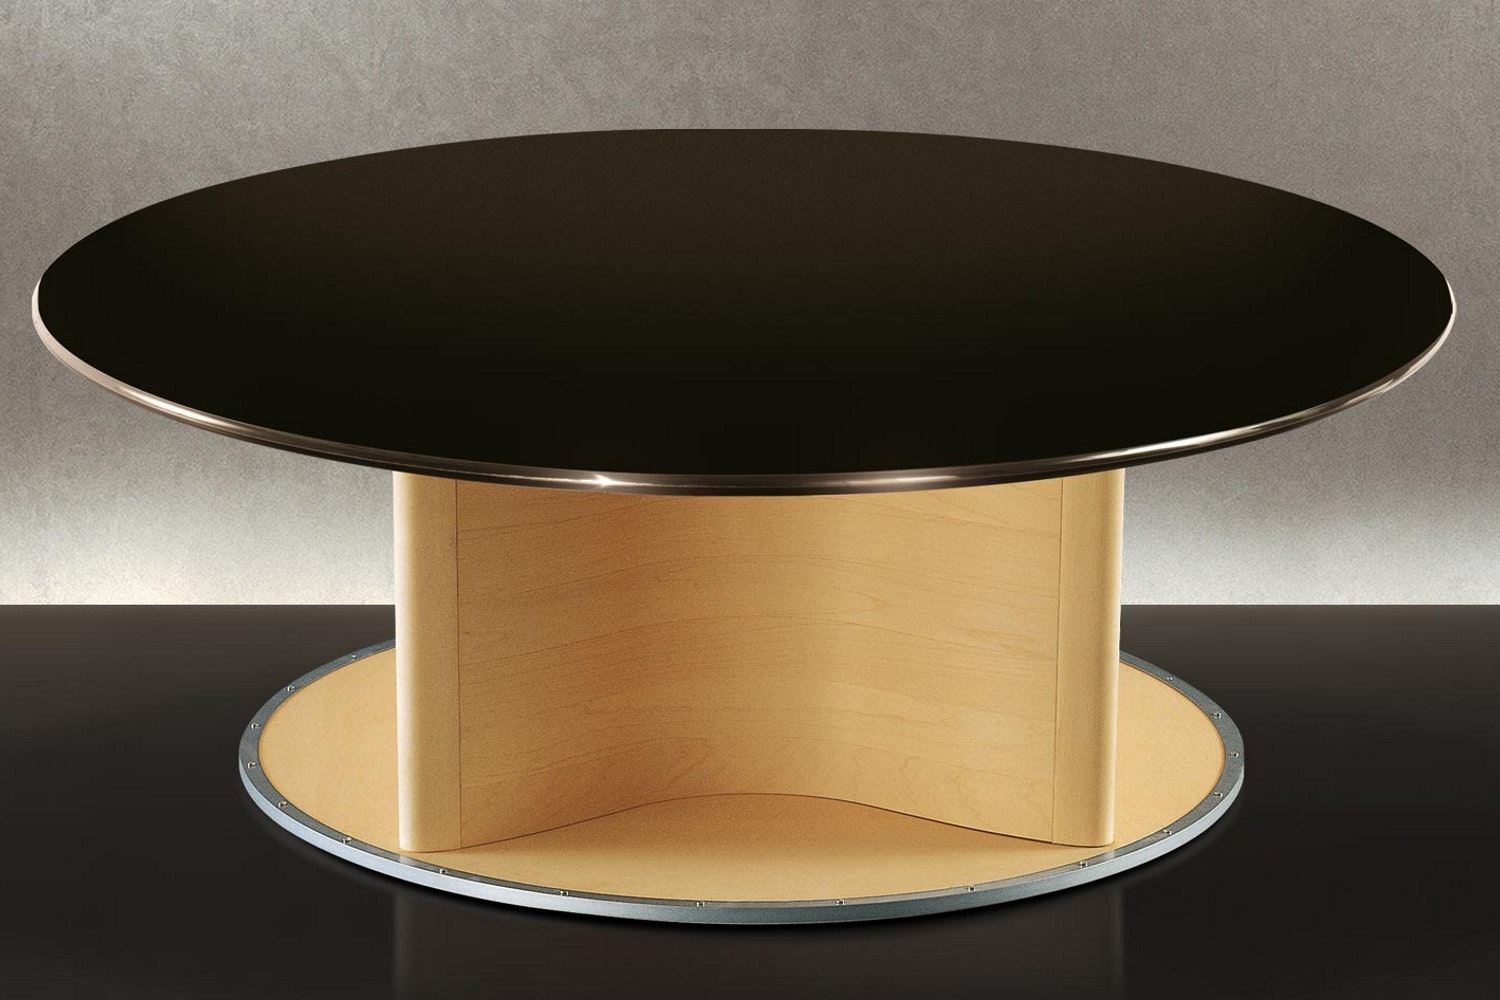 Ivi 2010 Table by Chi Wing Lo for Giorgetti